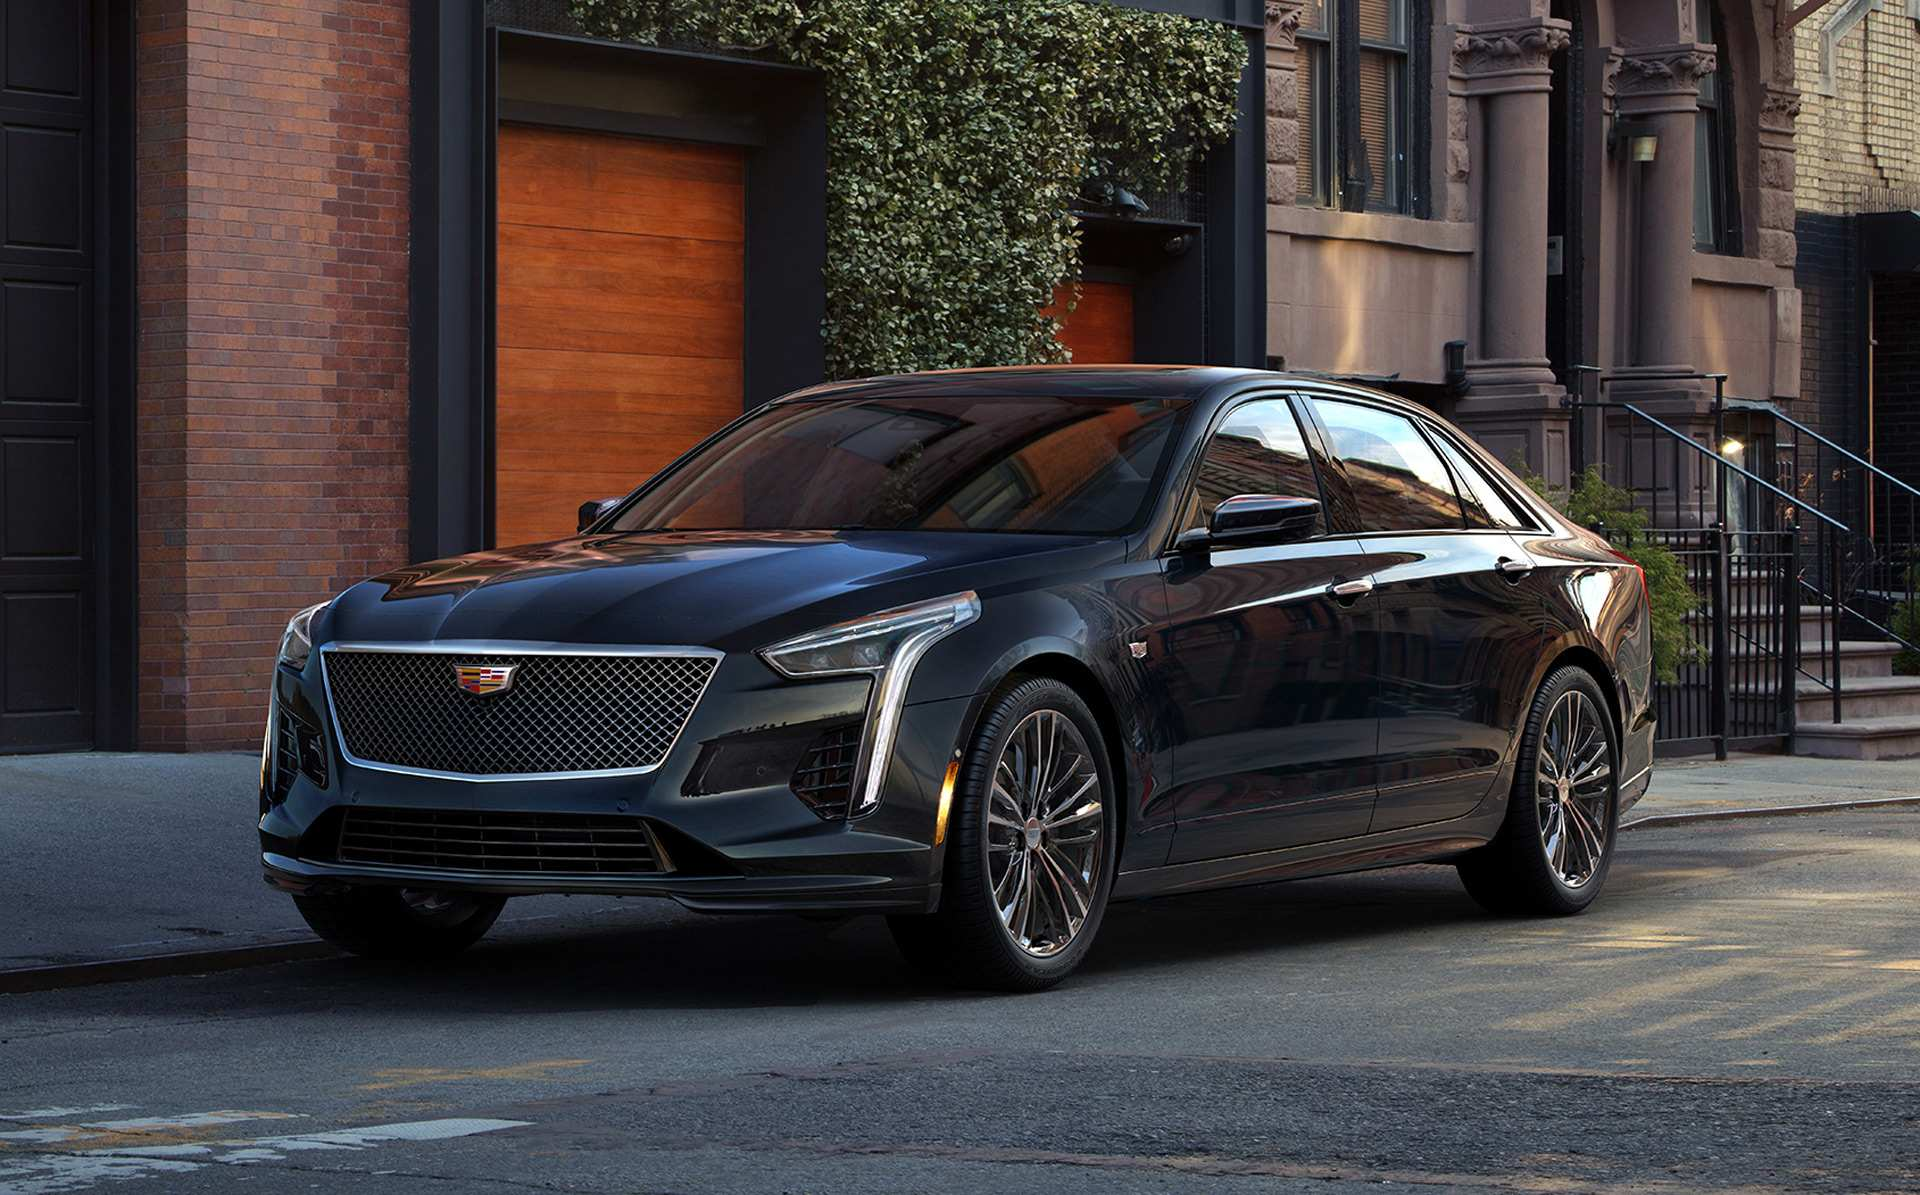 96 The 2020 Cadillac Cts V Horsepower Release